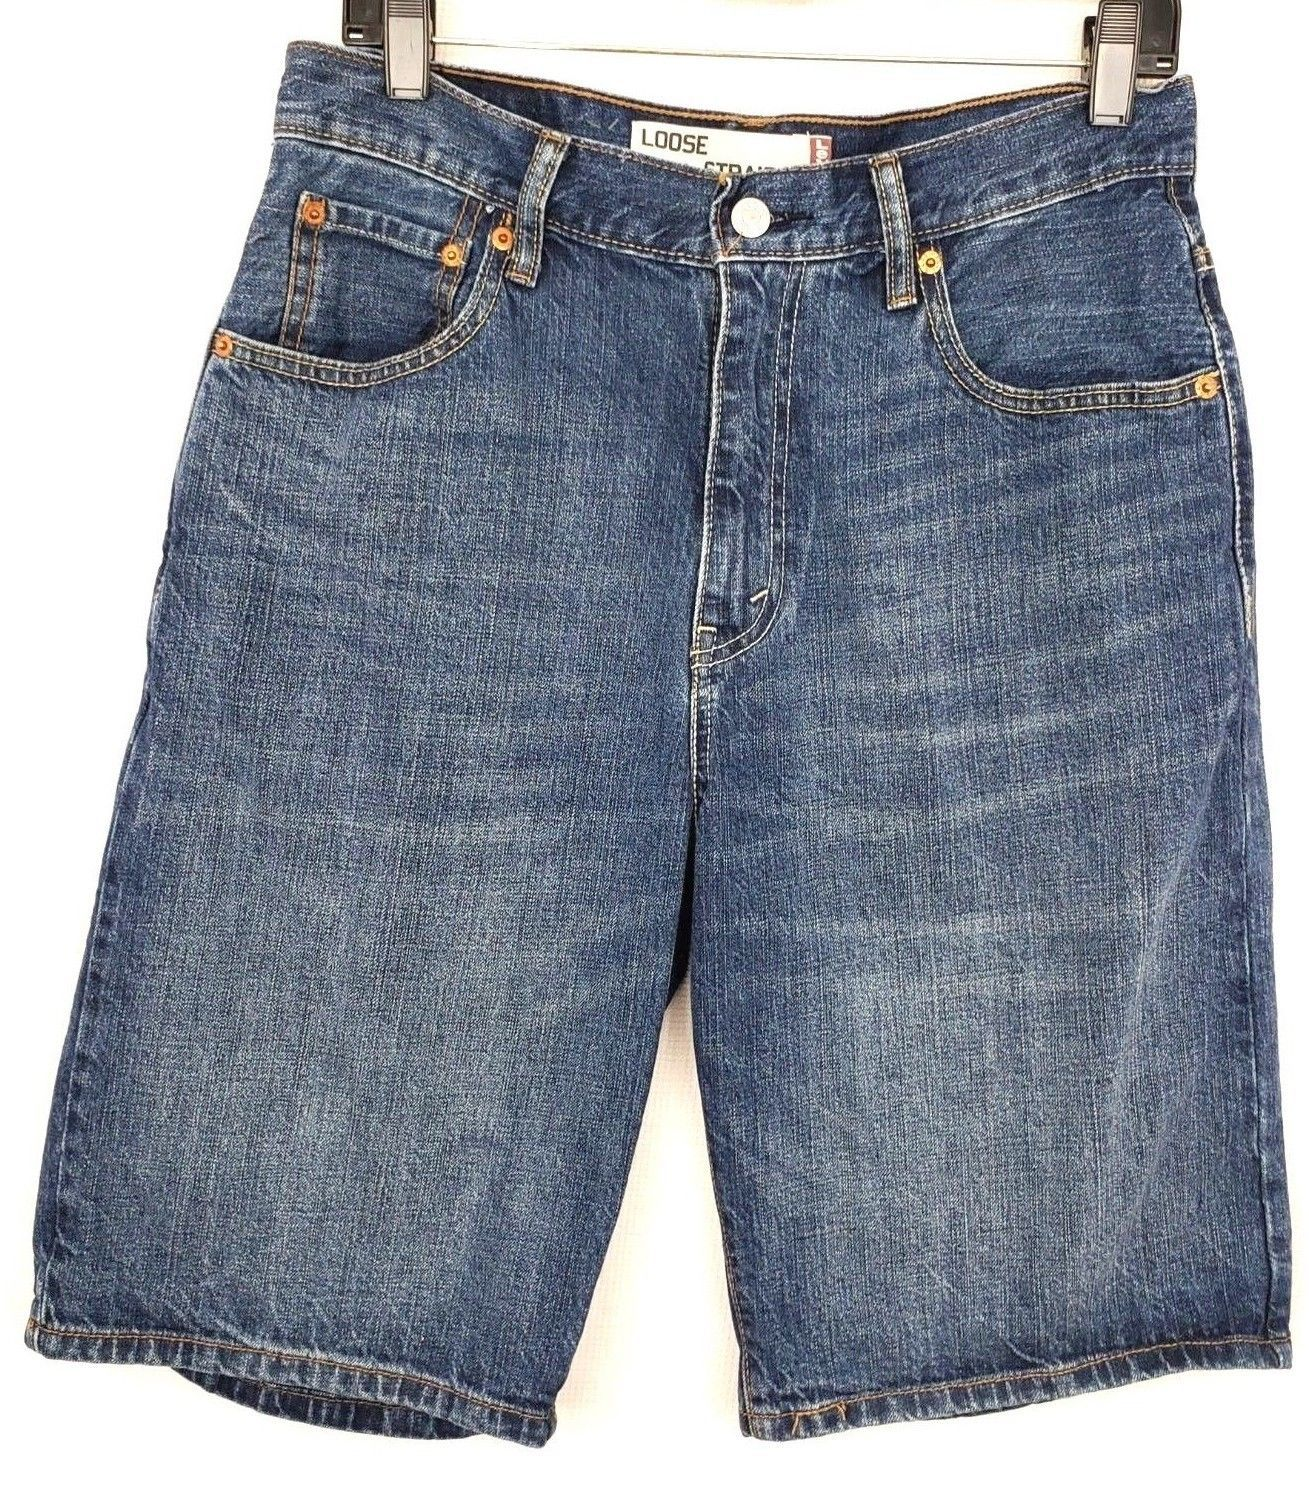 f60d4afe7a3 Levi's 569 Mens Size 30 Waist Loose Straight Fit Blue Jean Shorts - $15.40